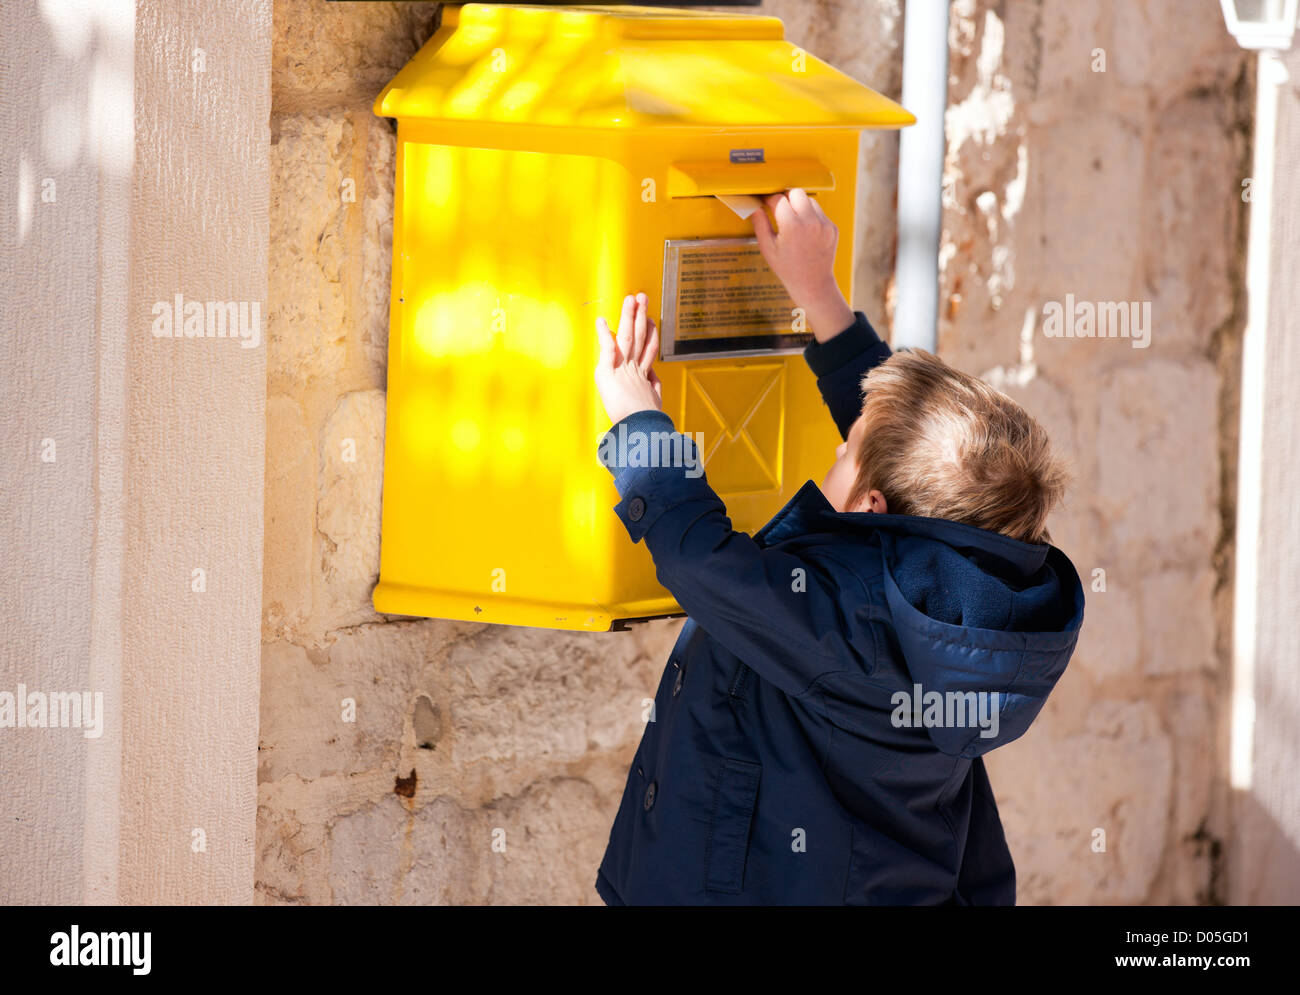 Boy Post Box Letter Stock Photos  Boy Post Box Letter Stock Images